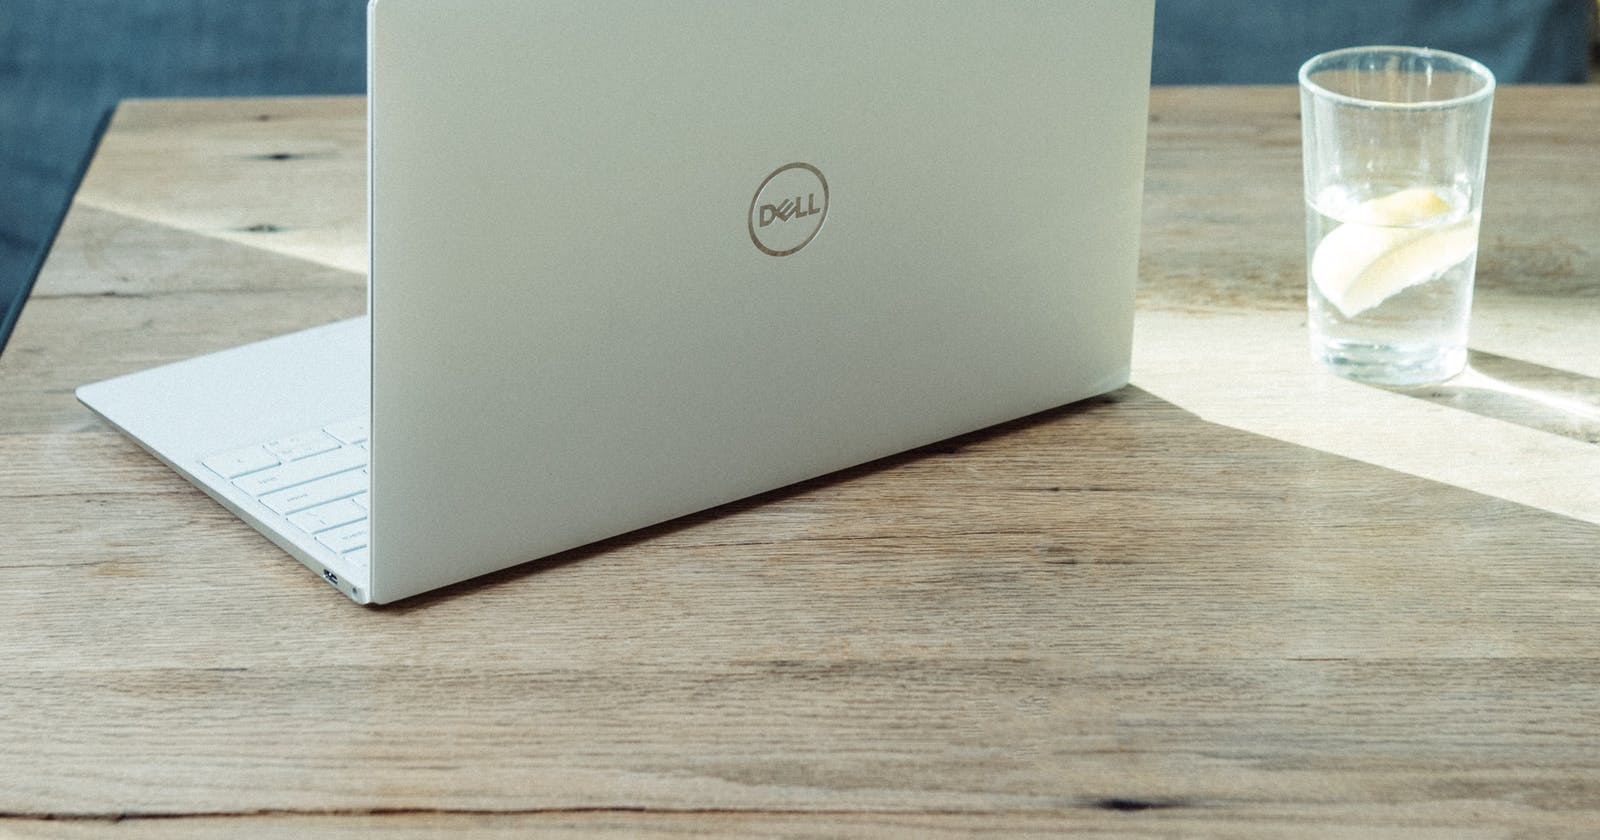 Dual boot Dell XPS 9500 Windows and Linux (Pop!_OS)